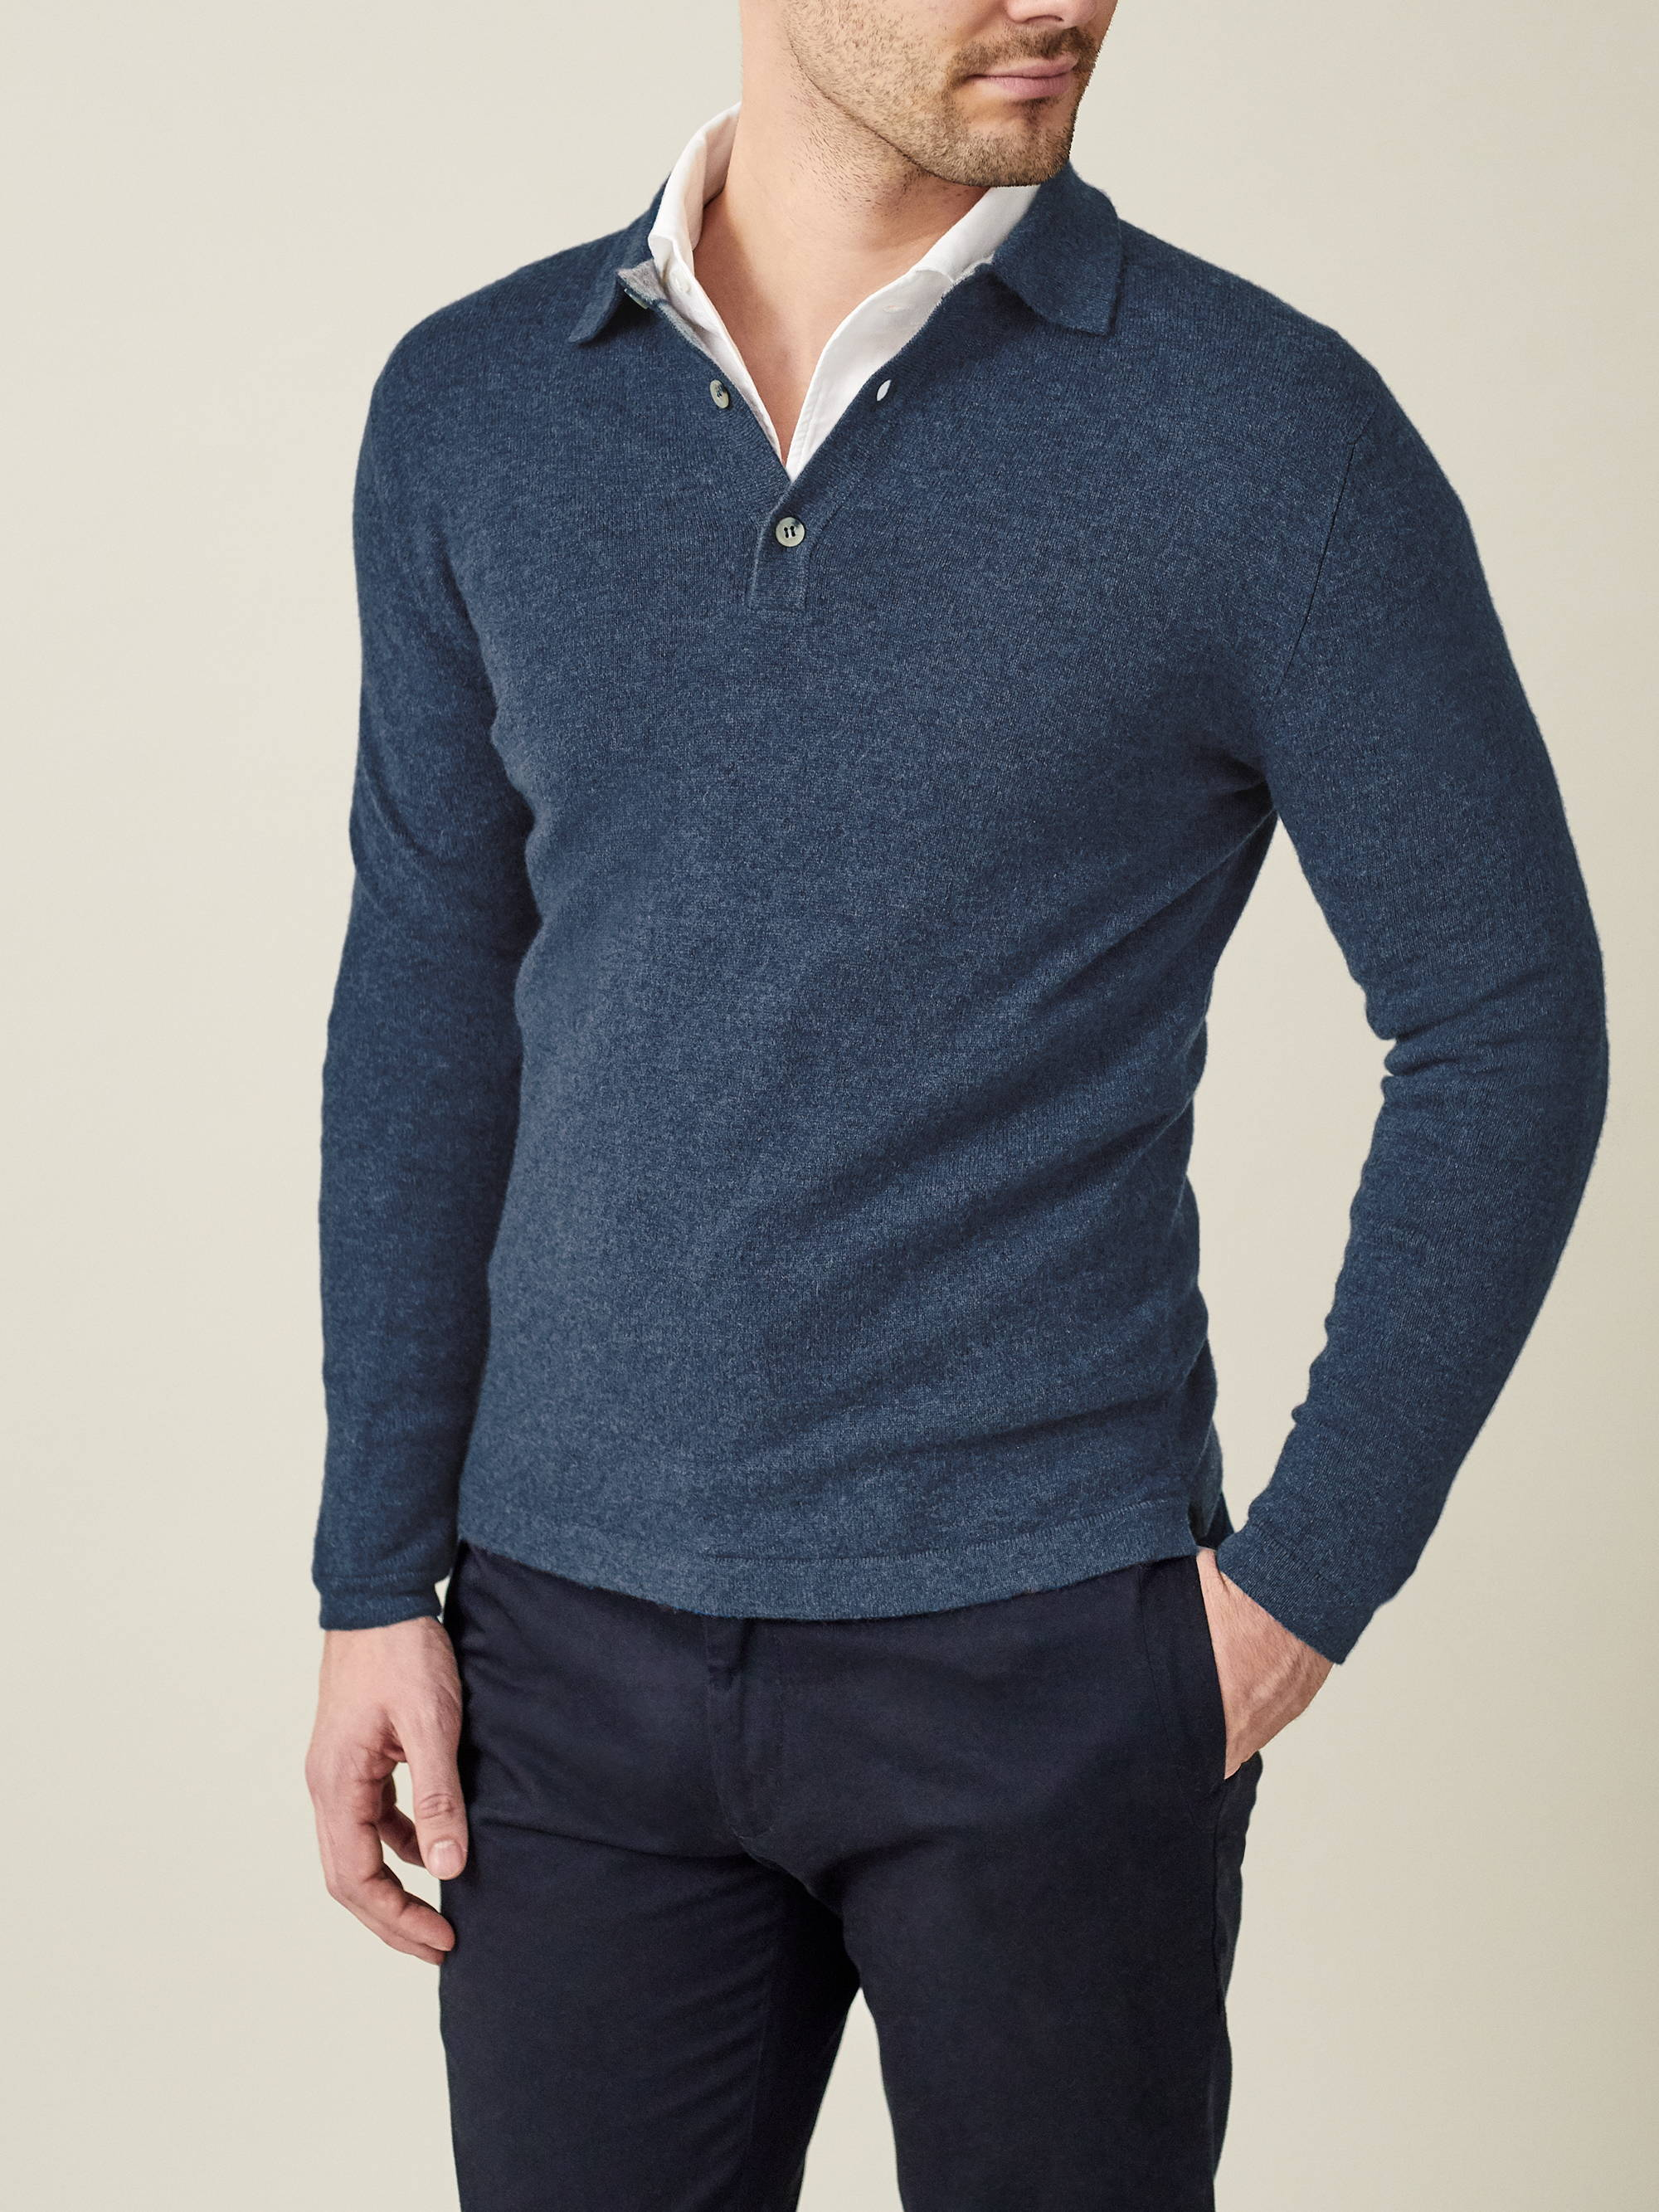 Atlantic Blue Cashmere Polo